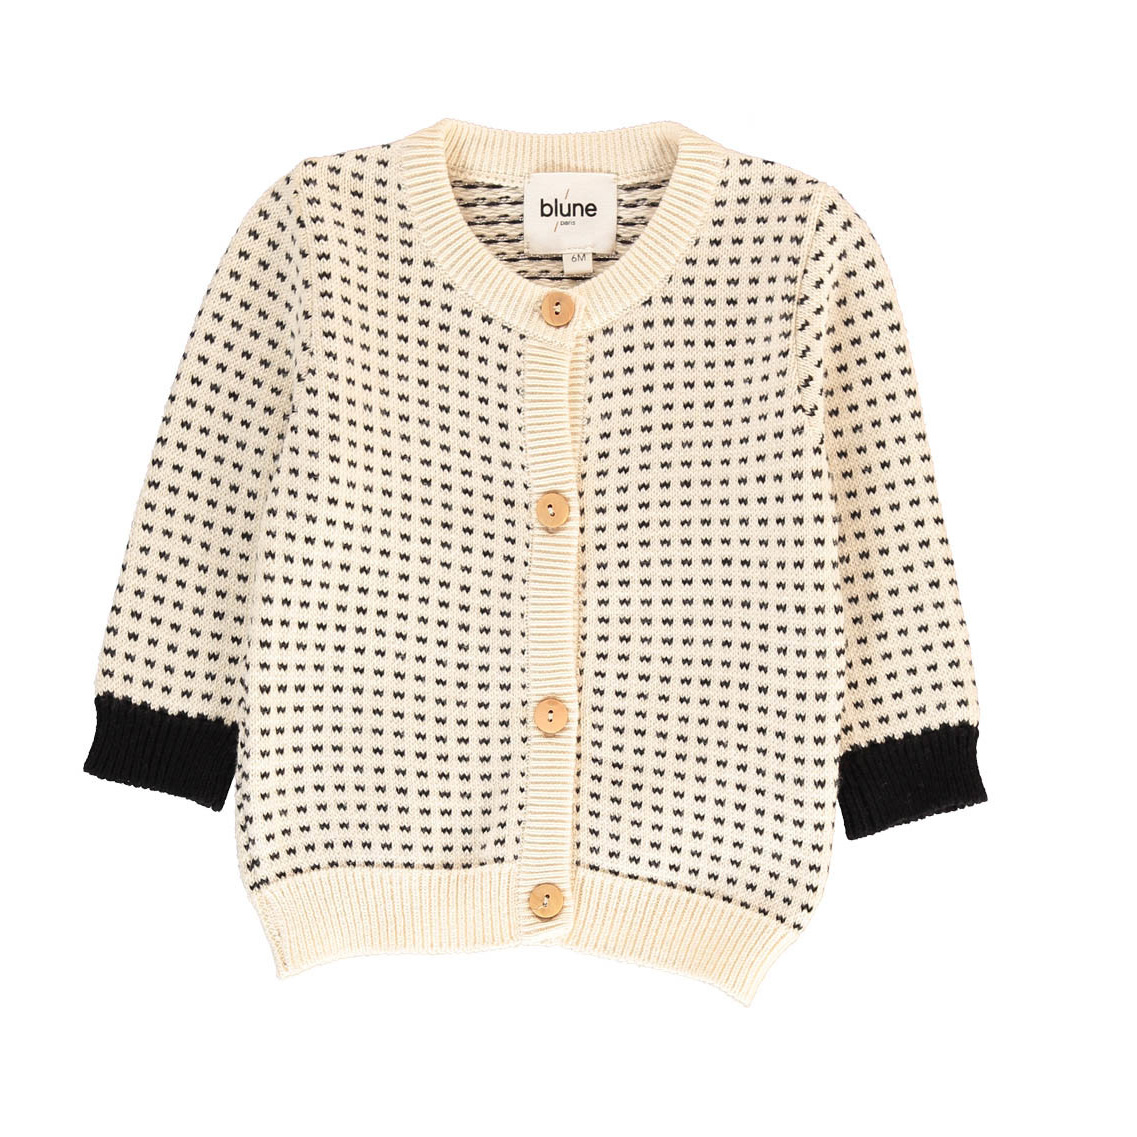 cardigan-blune-kids-smallable-soldes